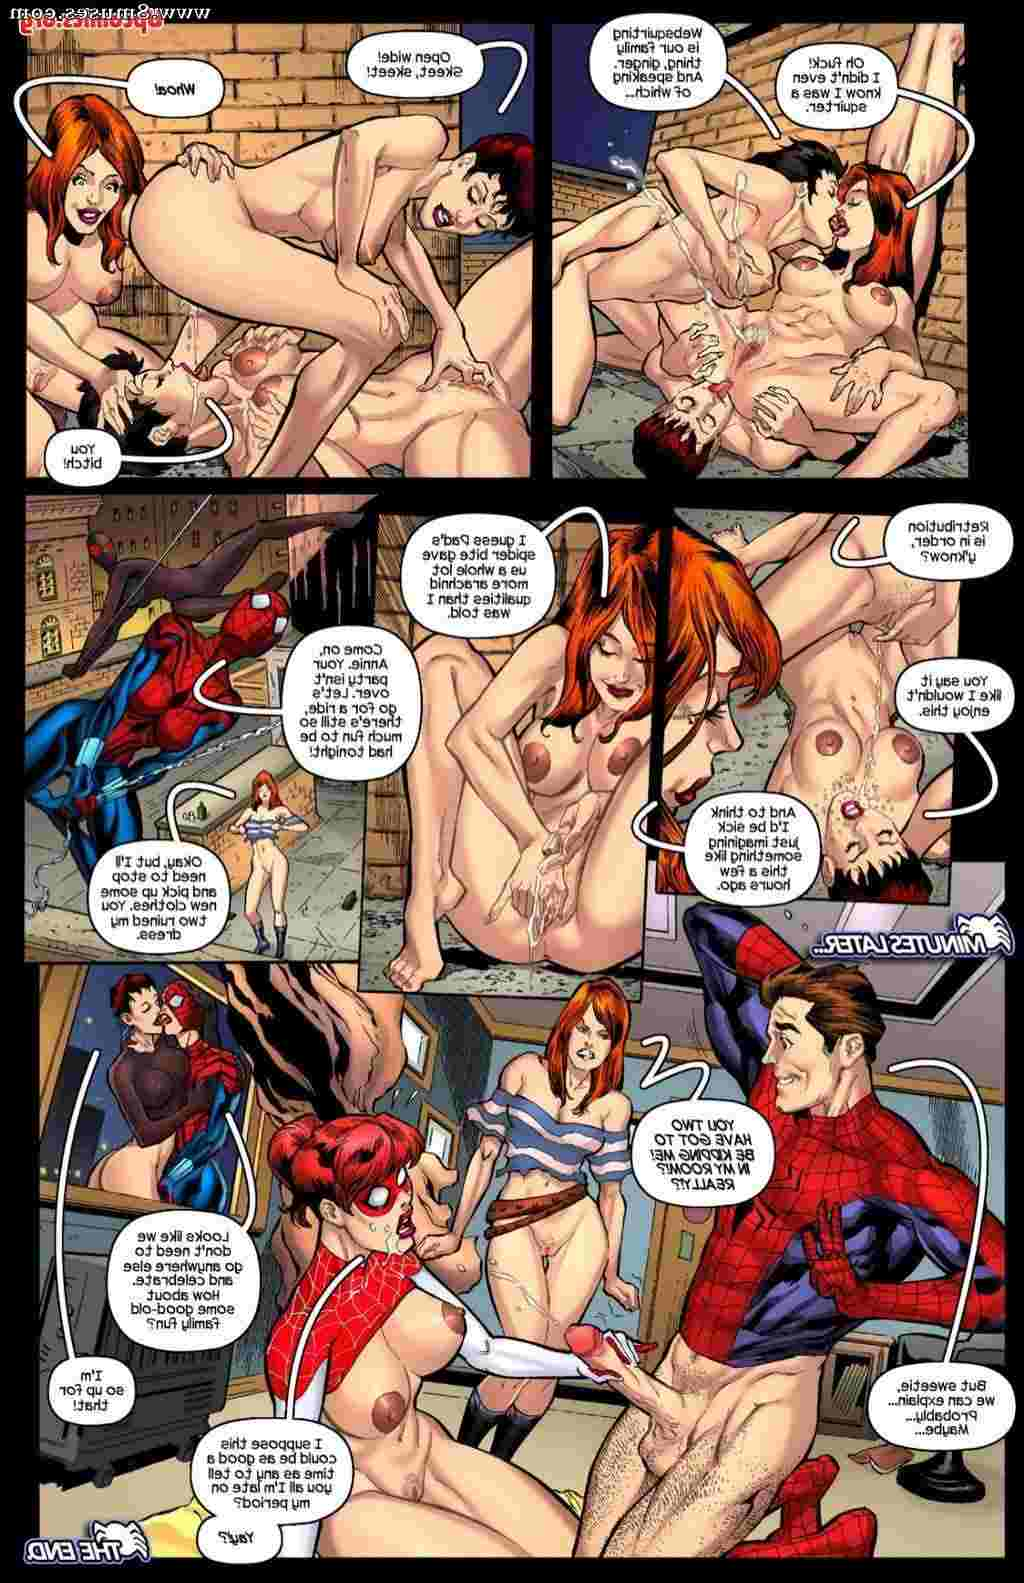 Tracy-Scops-Comics/Scions-The-Spidercest-Legacy Scions_-_The_Spidercest_Legacy__8muses_-_Sex_and_Porn_Comics_4.jpg